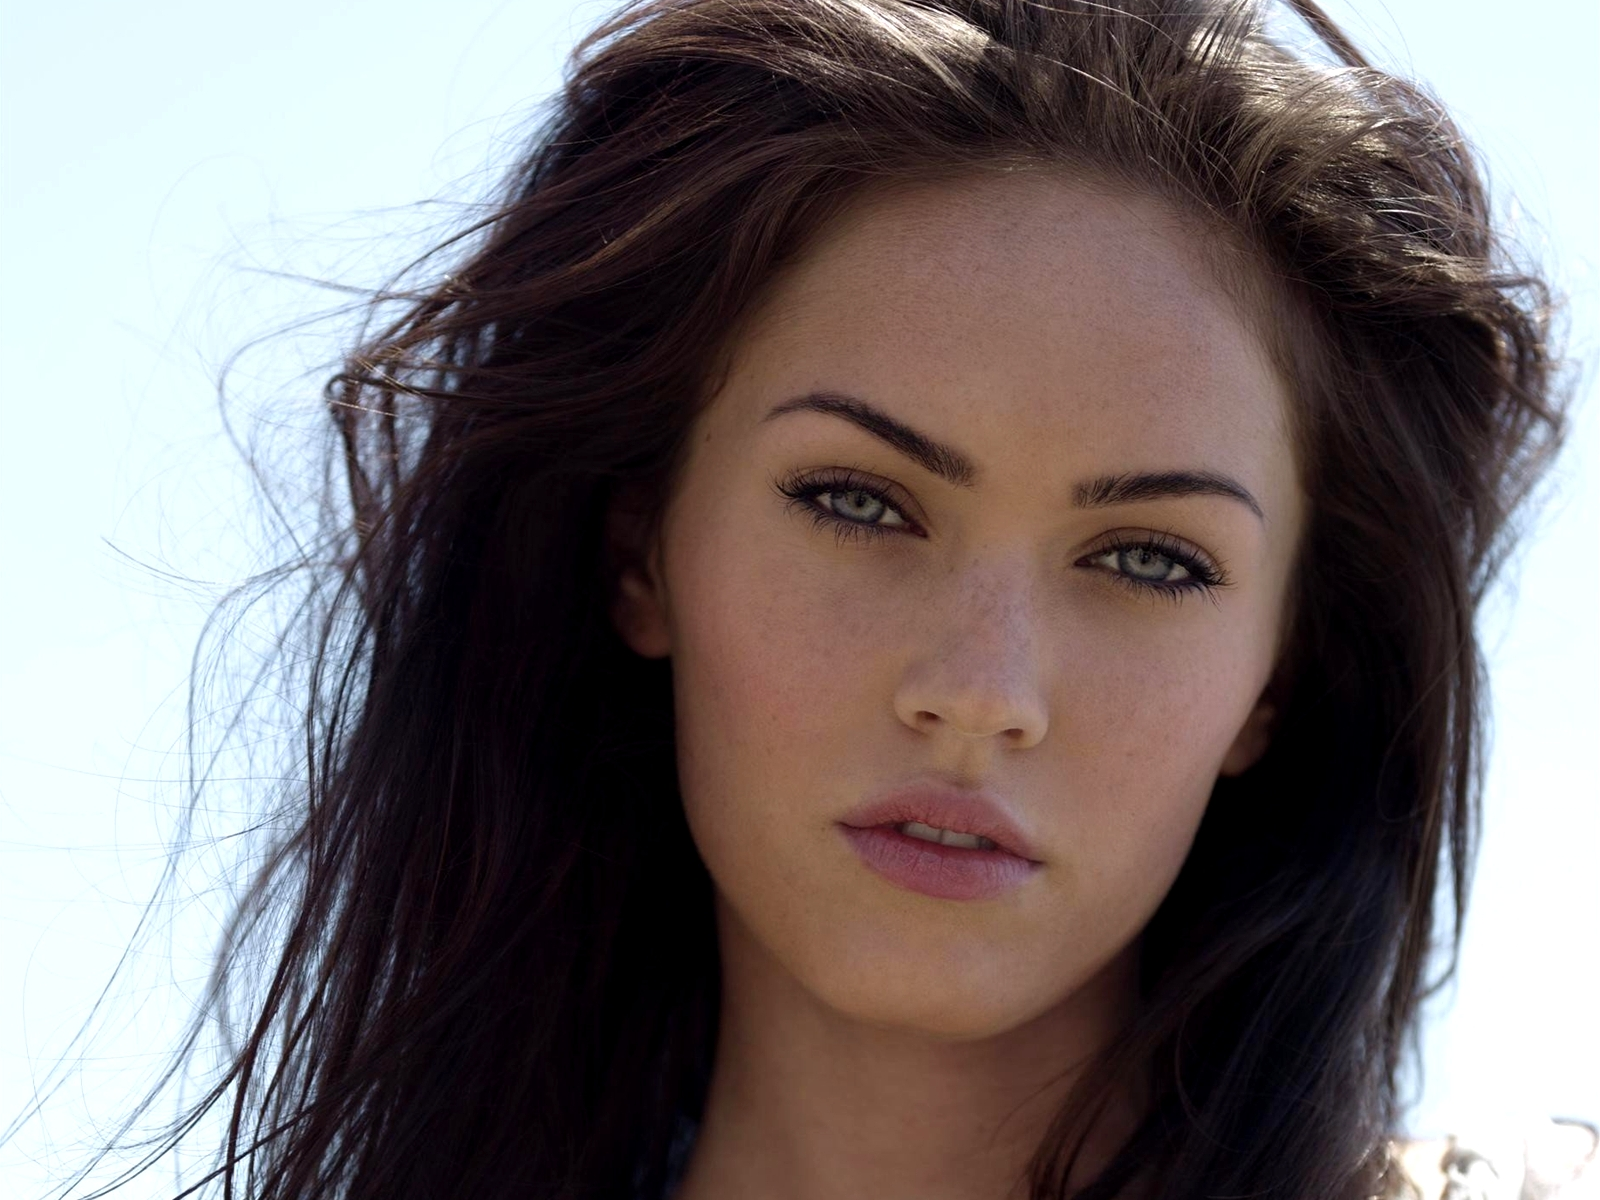 67877_megan-foks_or_megan-fox_1600x1200_(www_GdeFon_ru)